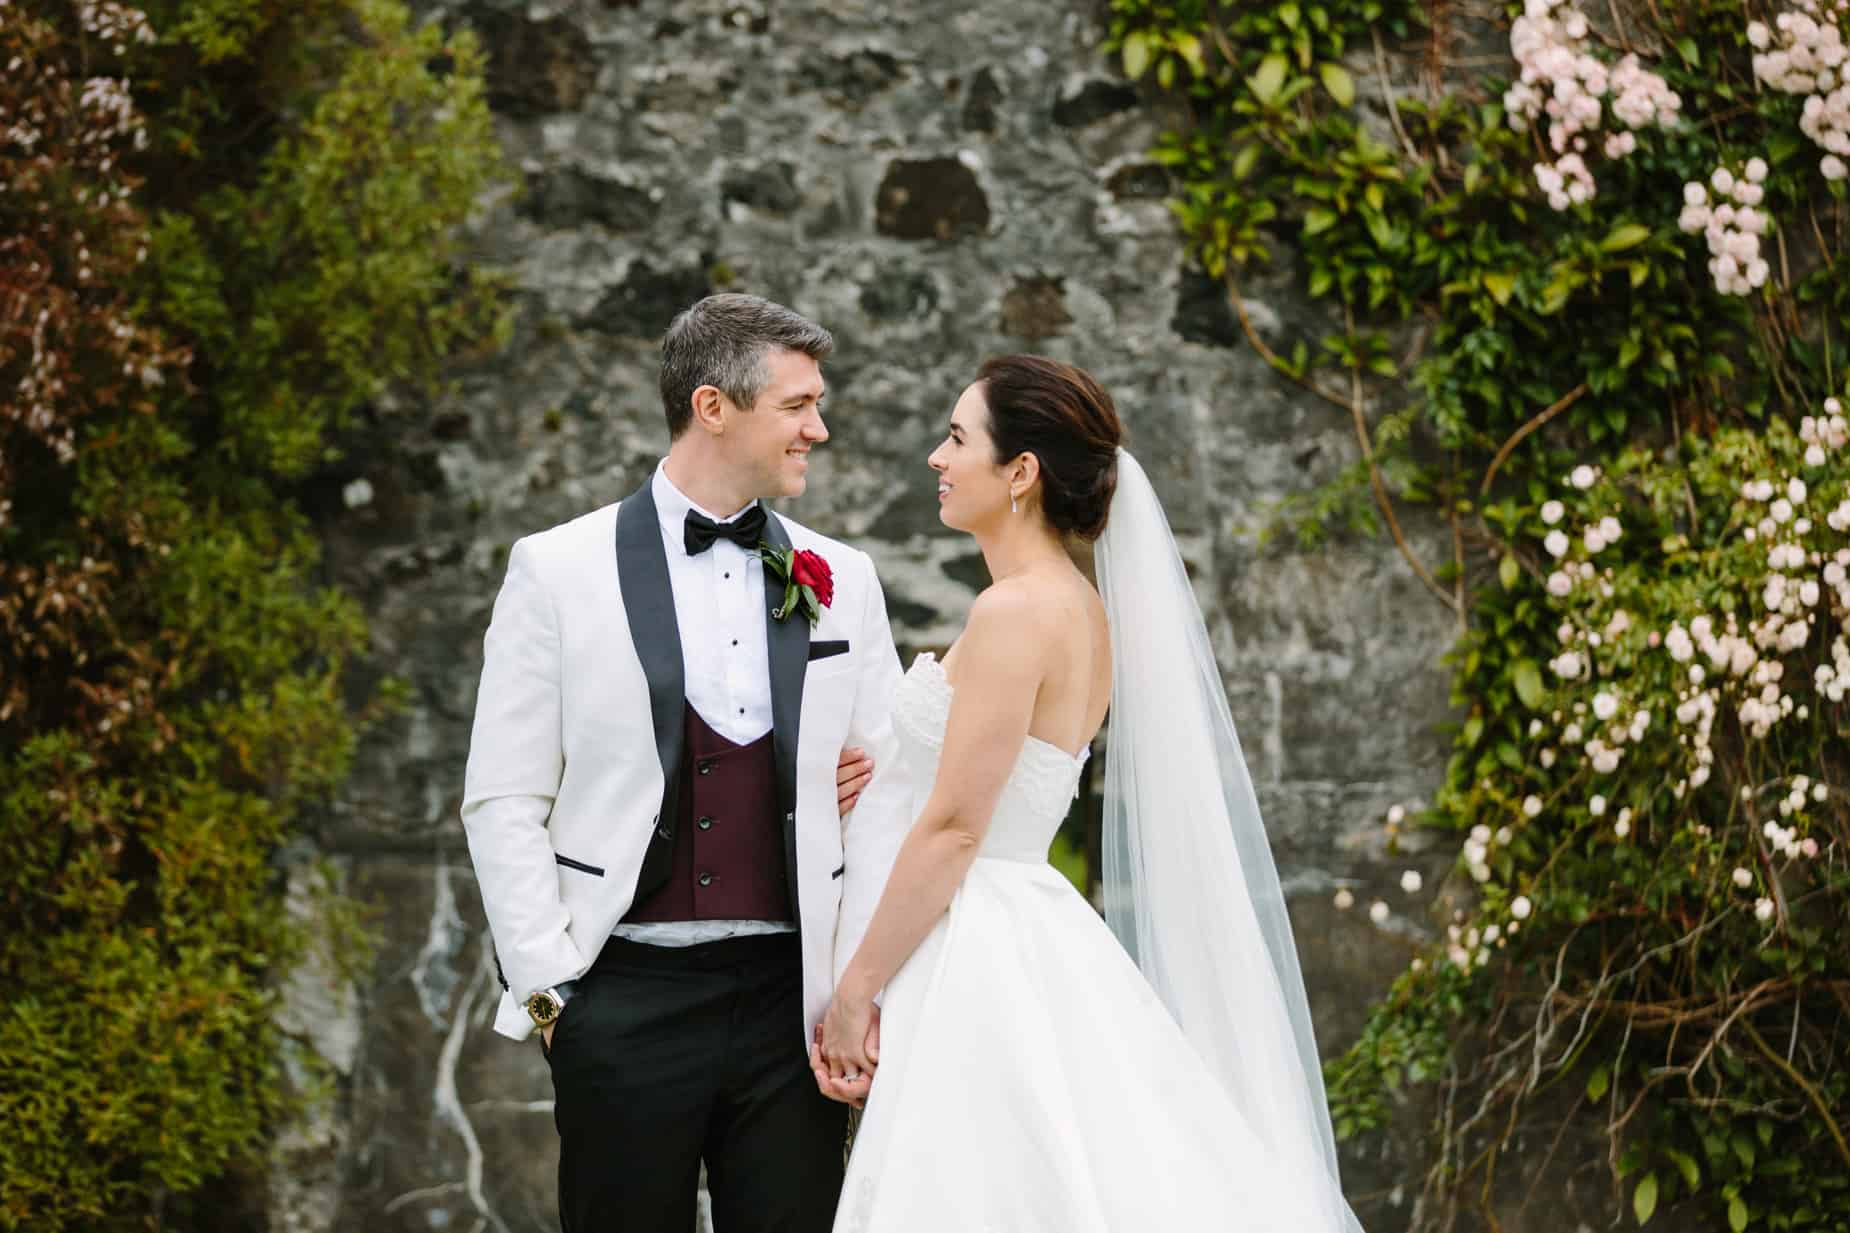 broom in white tuxedo jacket with his bride looking at each other